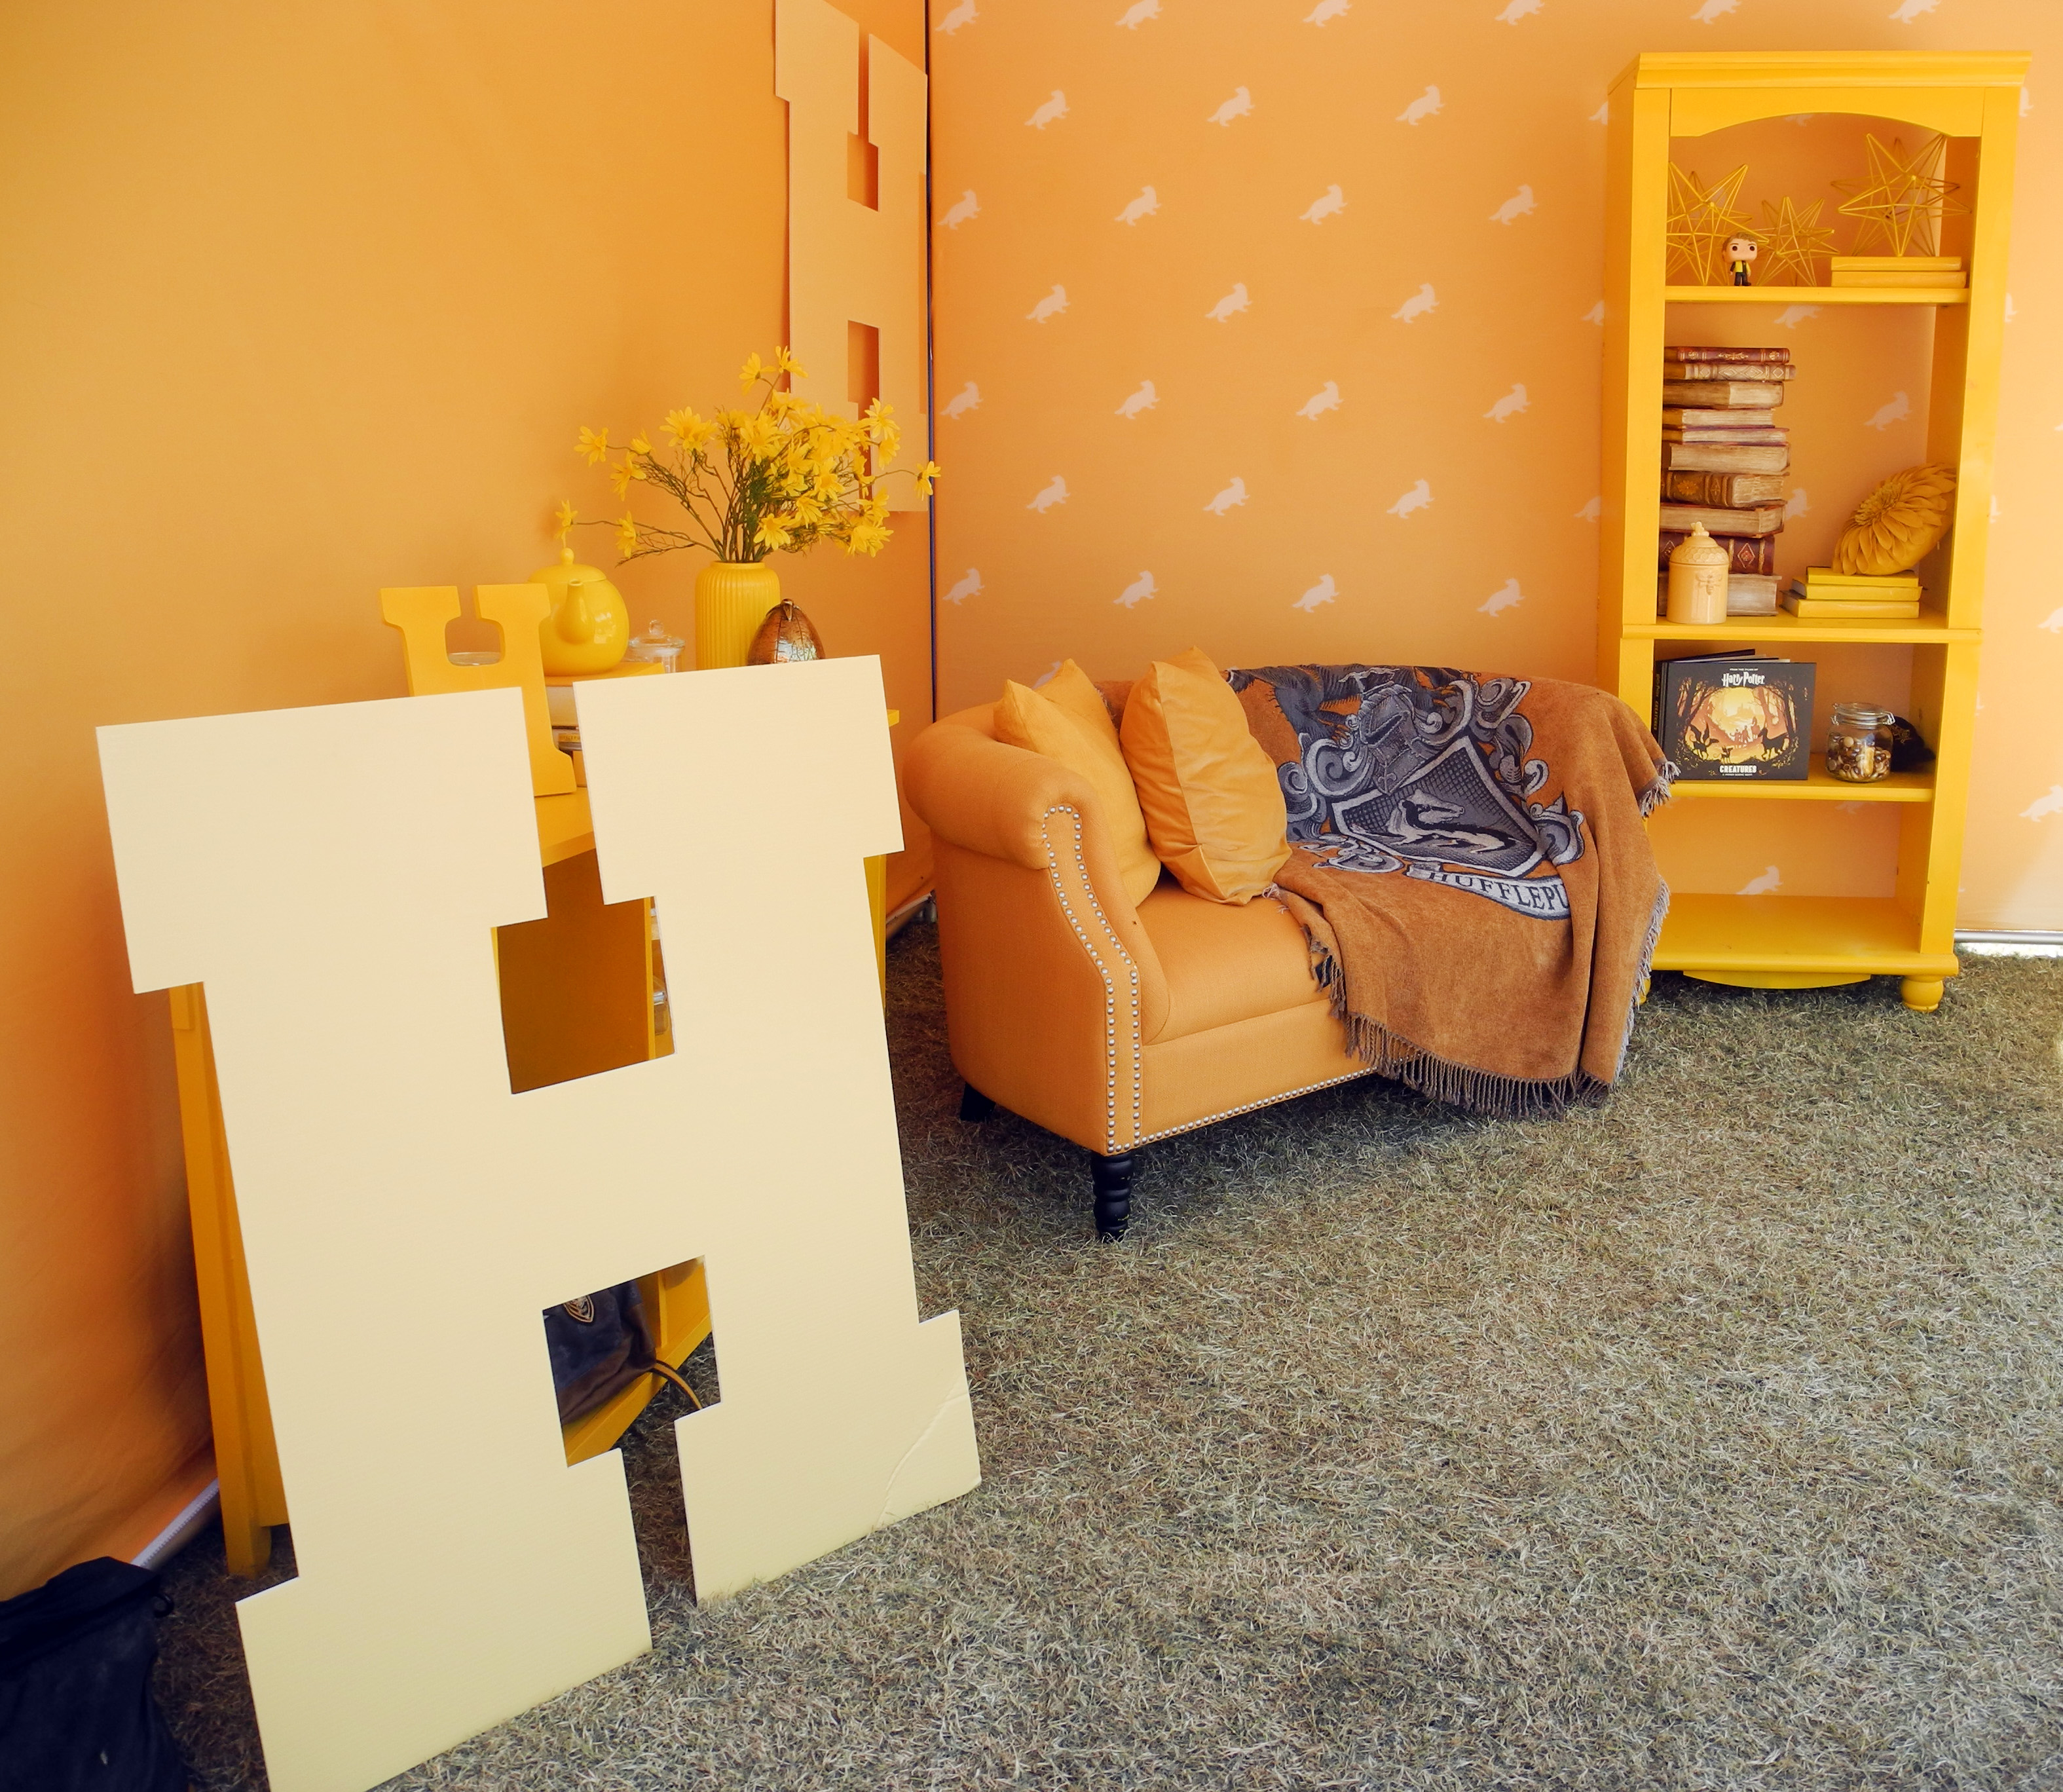 A miniature Hufflepuff common room looks cozy and inviting during a Back to Hogwarts event at the University of Arizona.